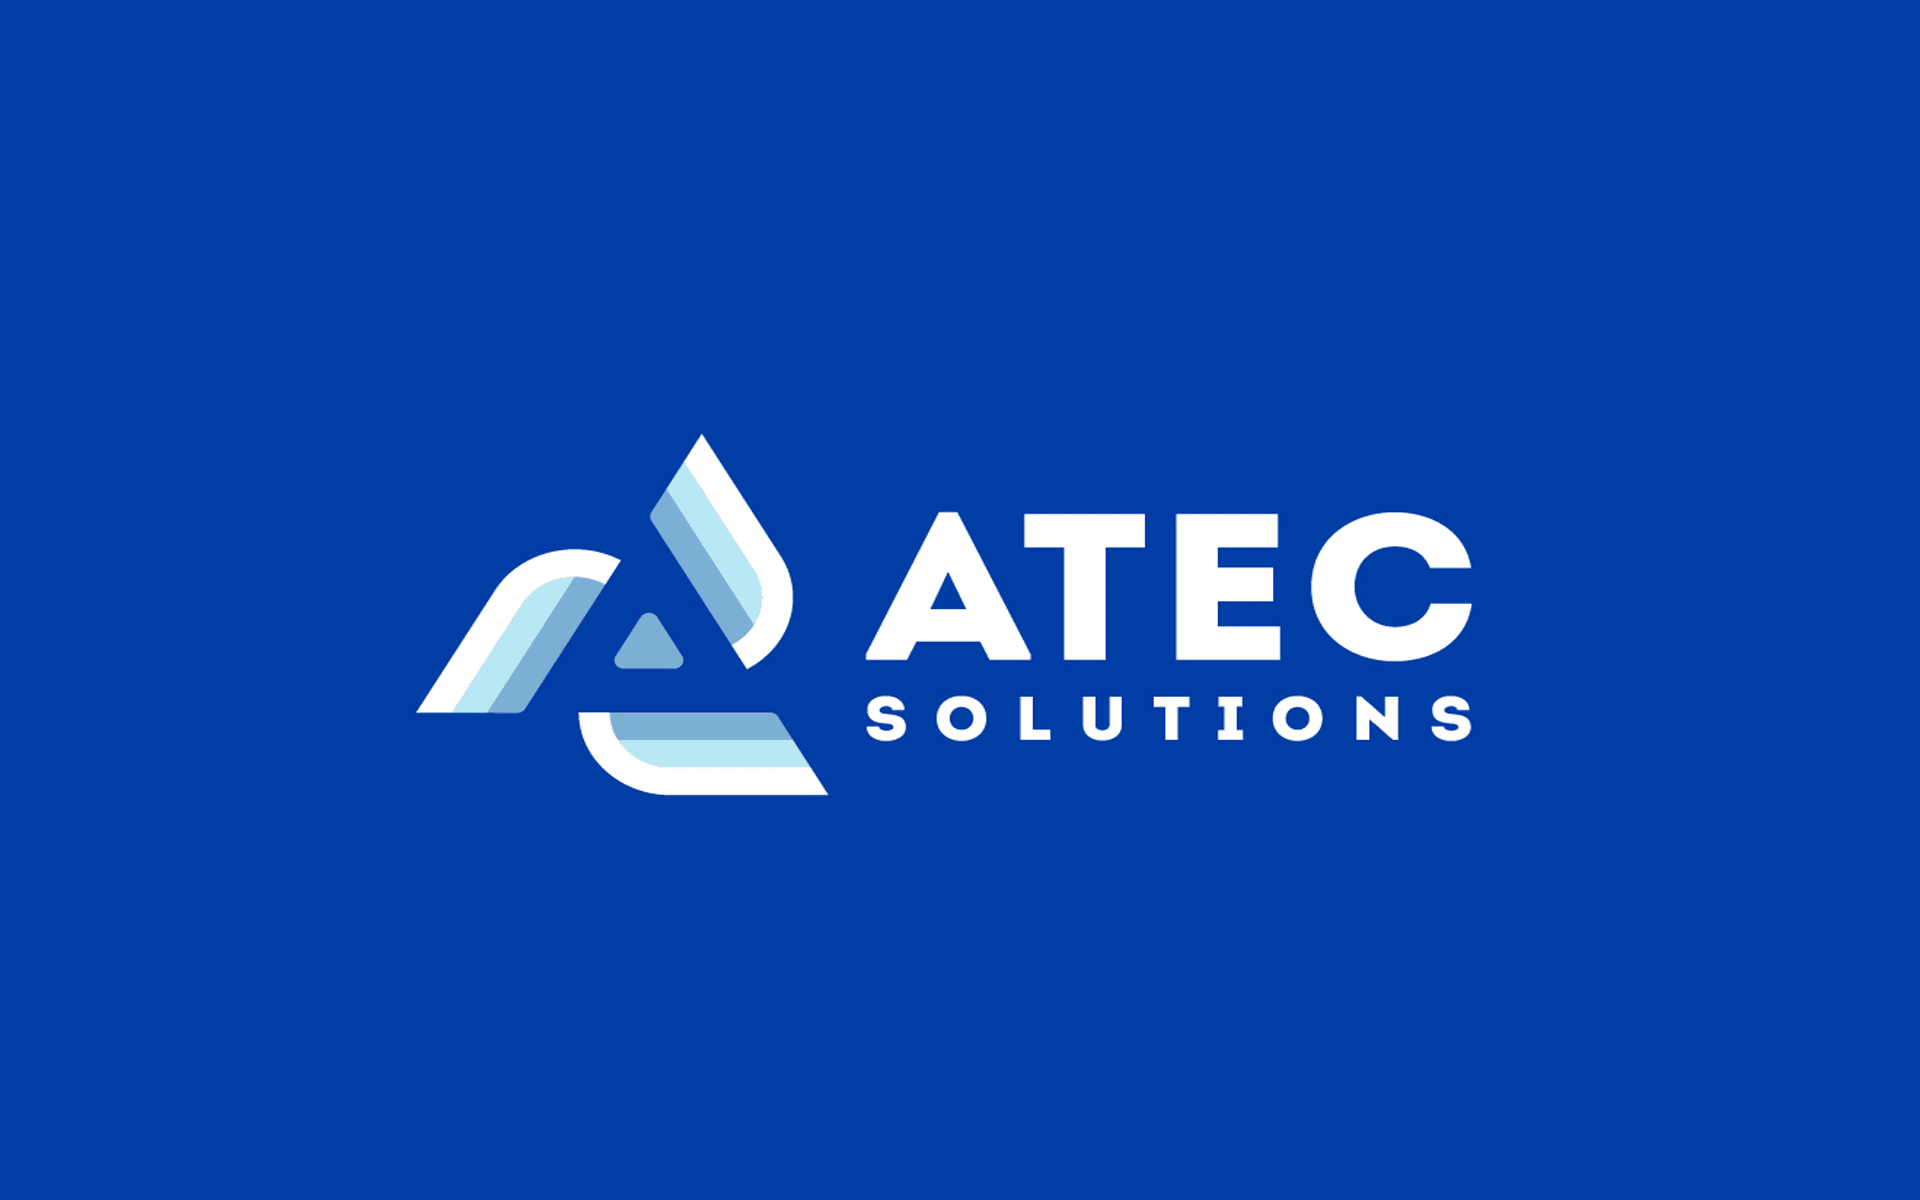 ATEC-Solutions-Logo-and-Brand